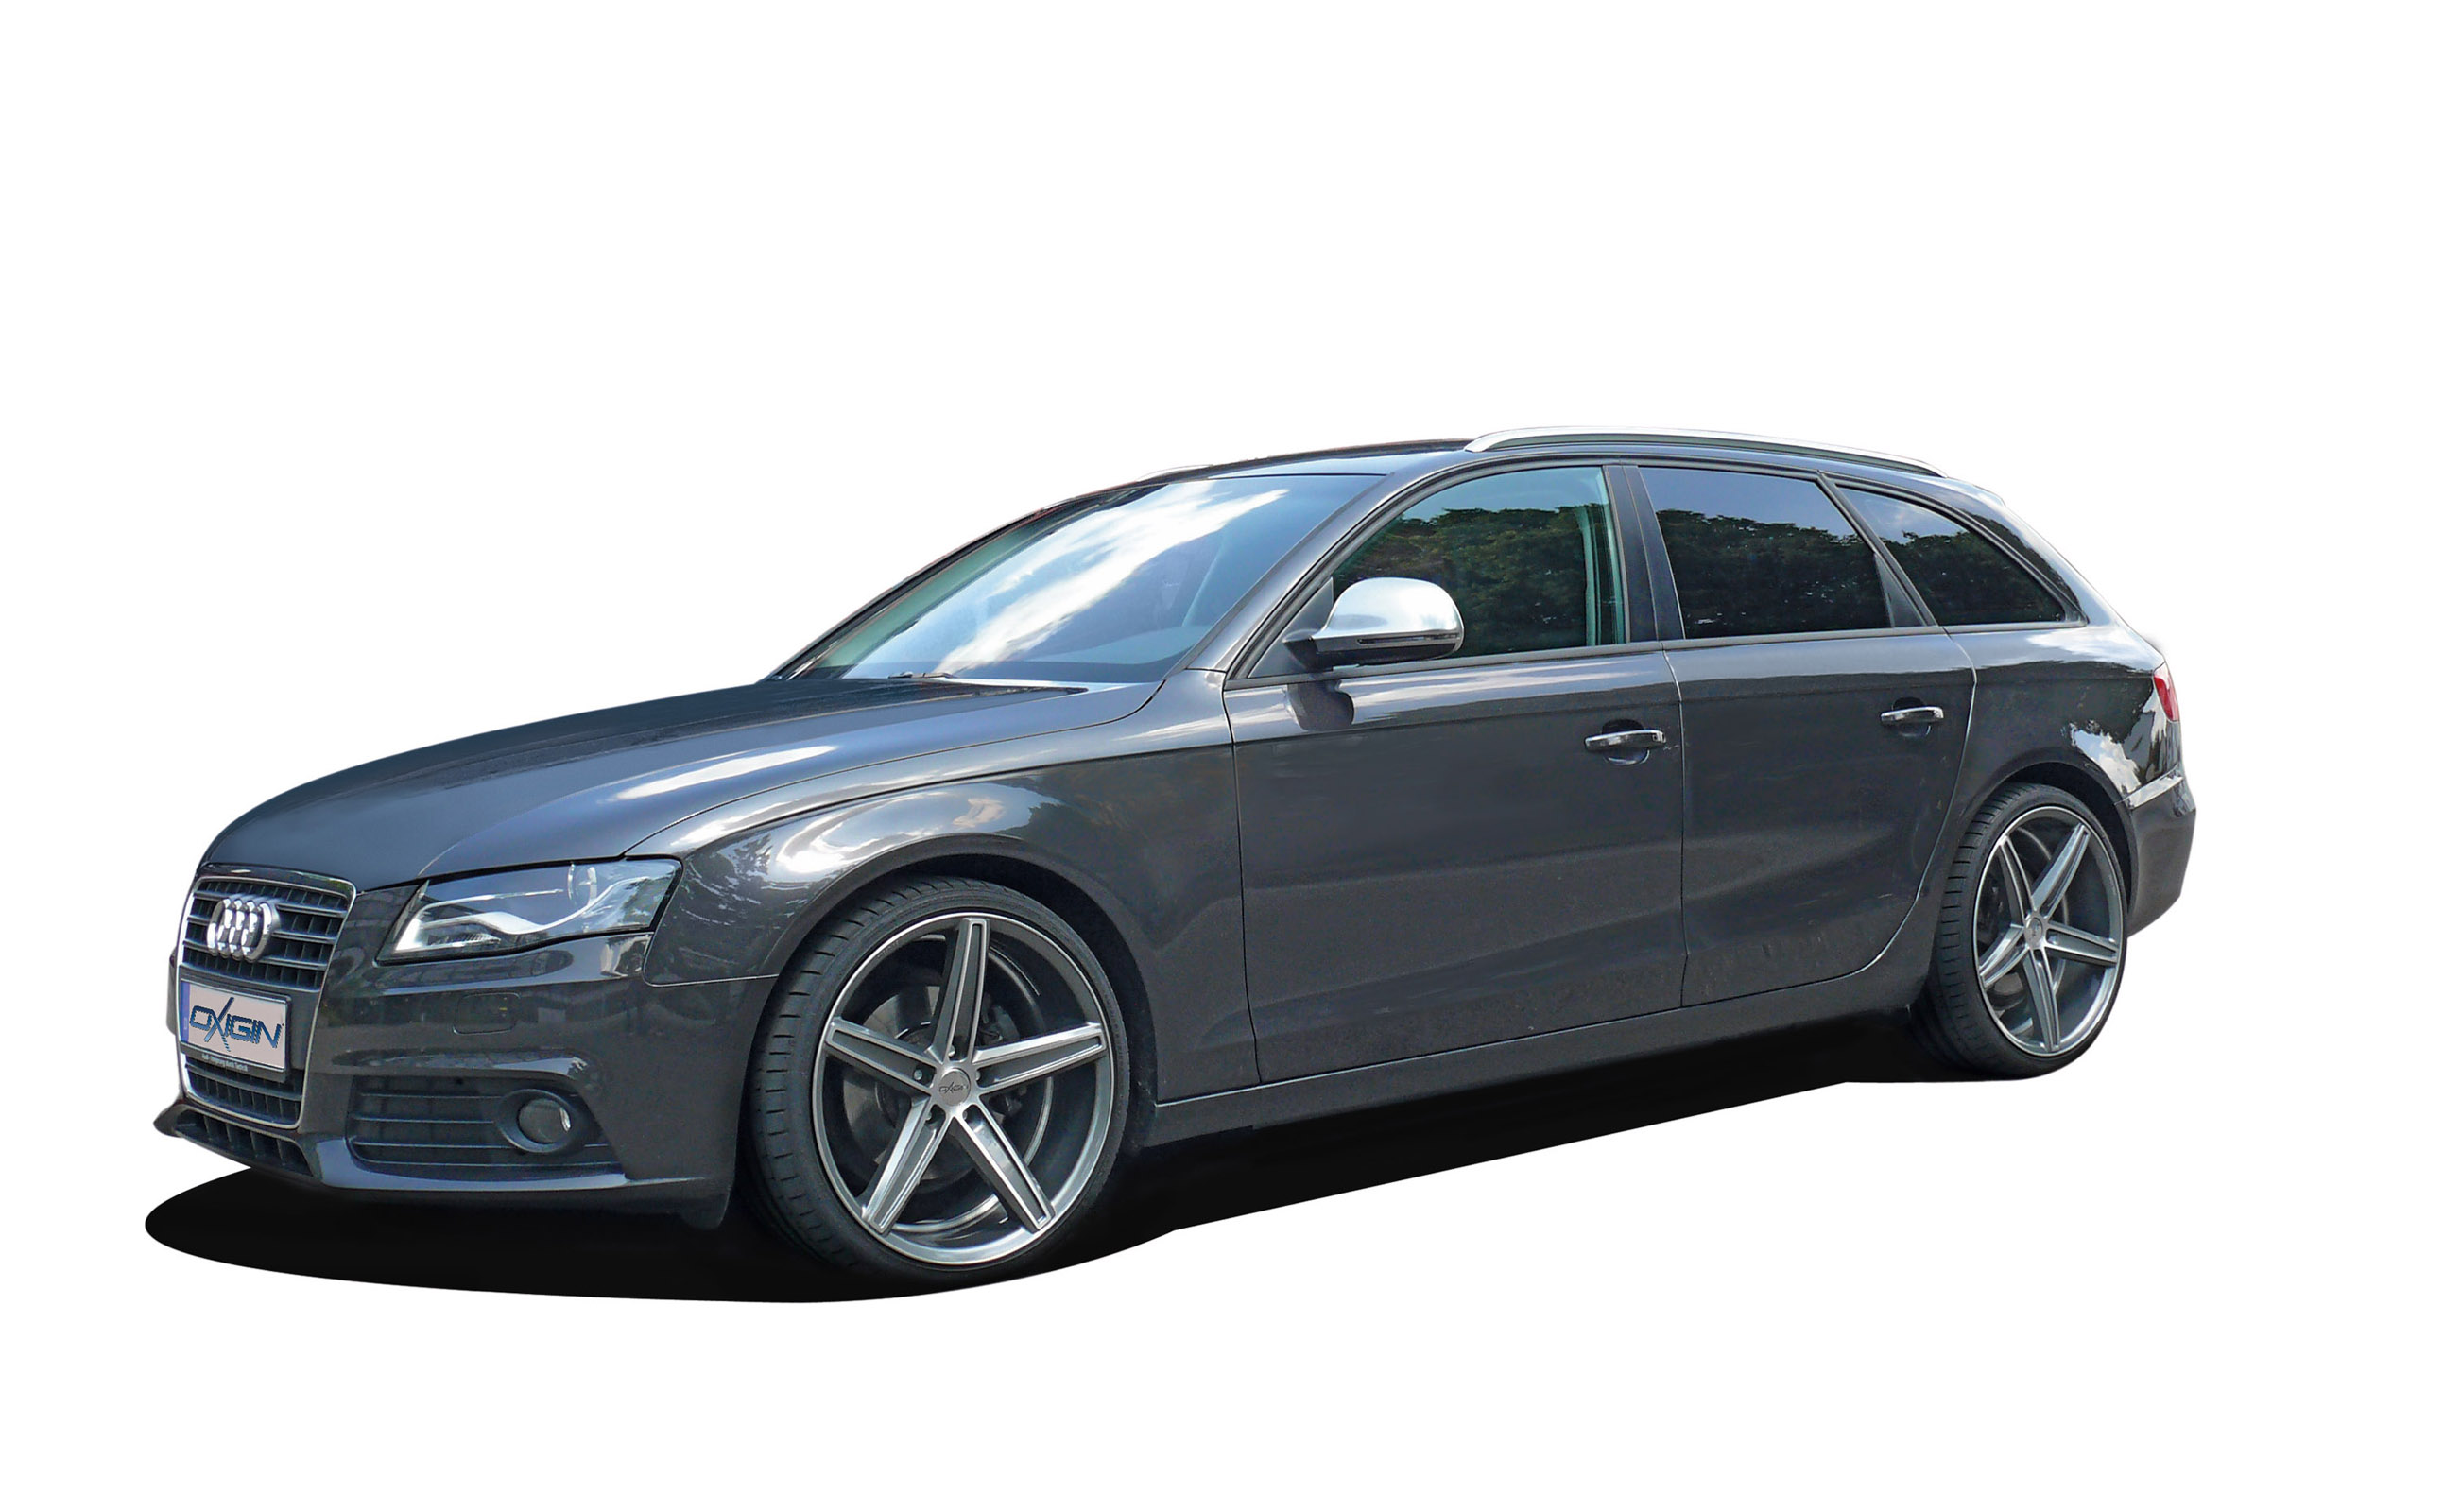 Oxigin Audi A4 Avant With Ox18 Concave In Graphite Full